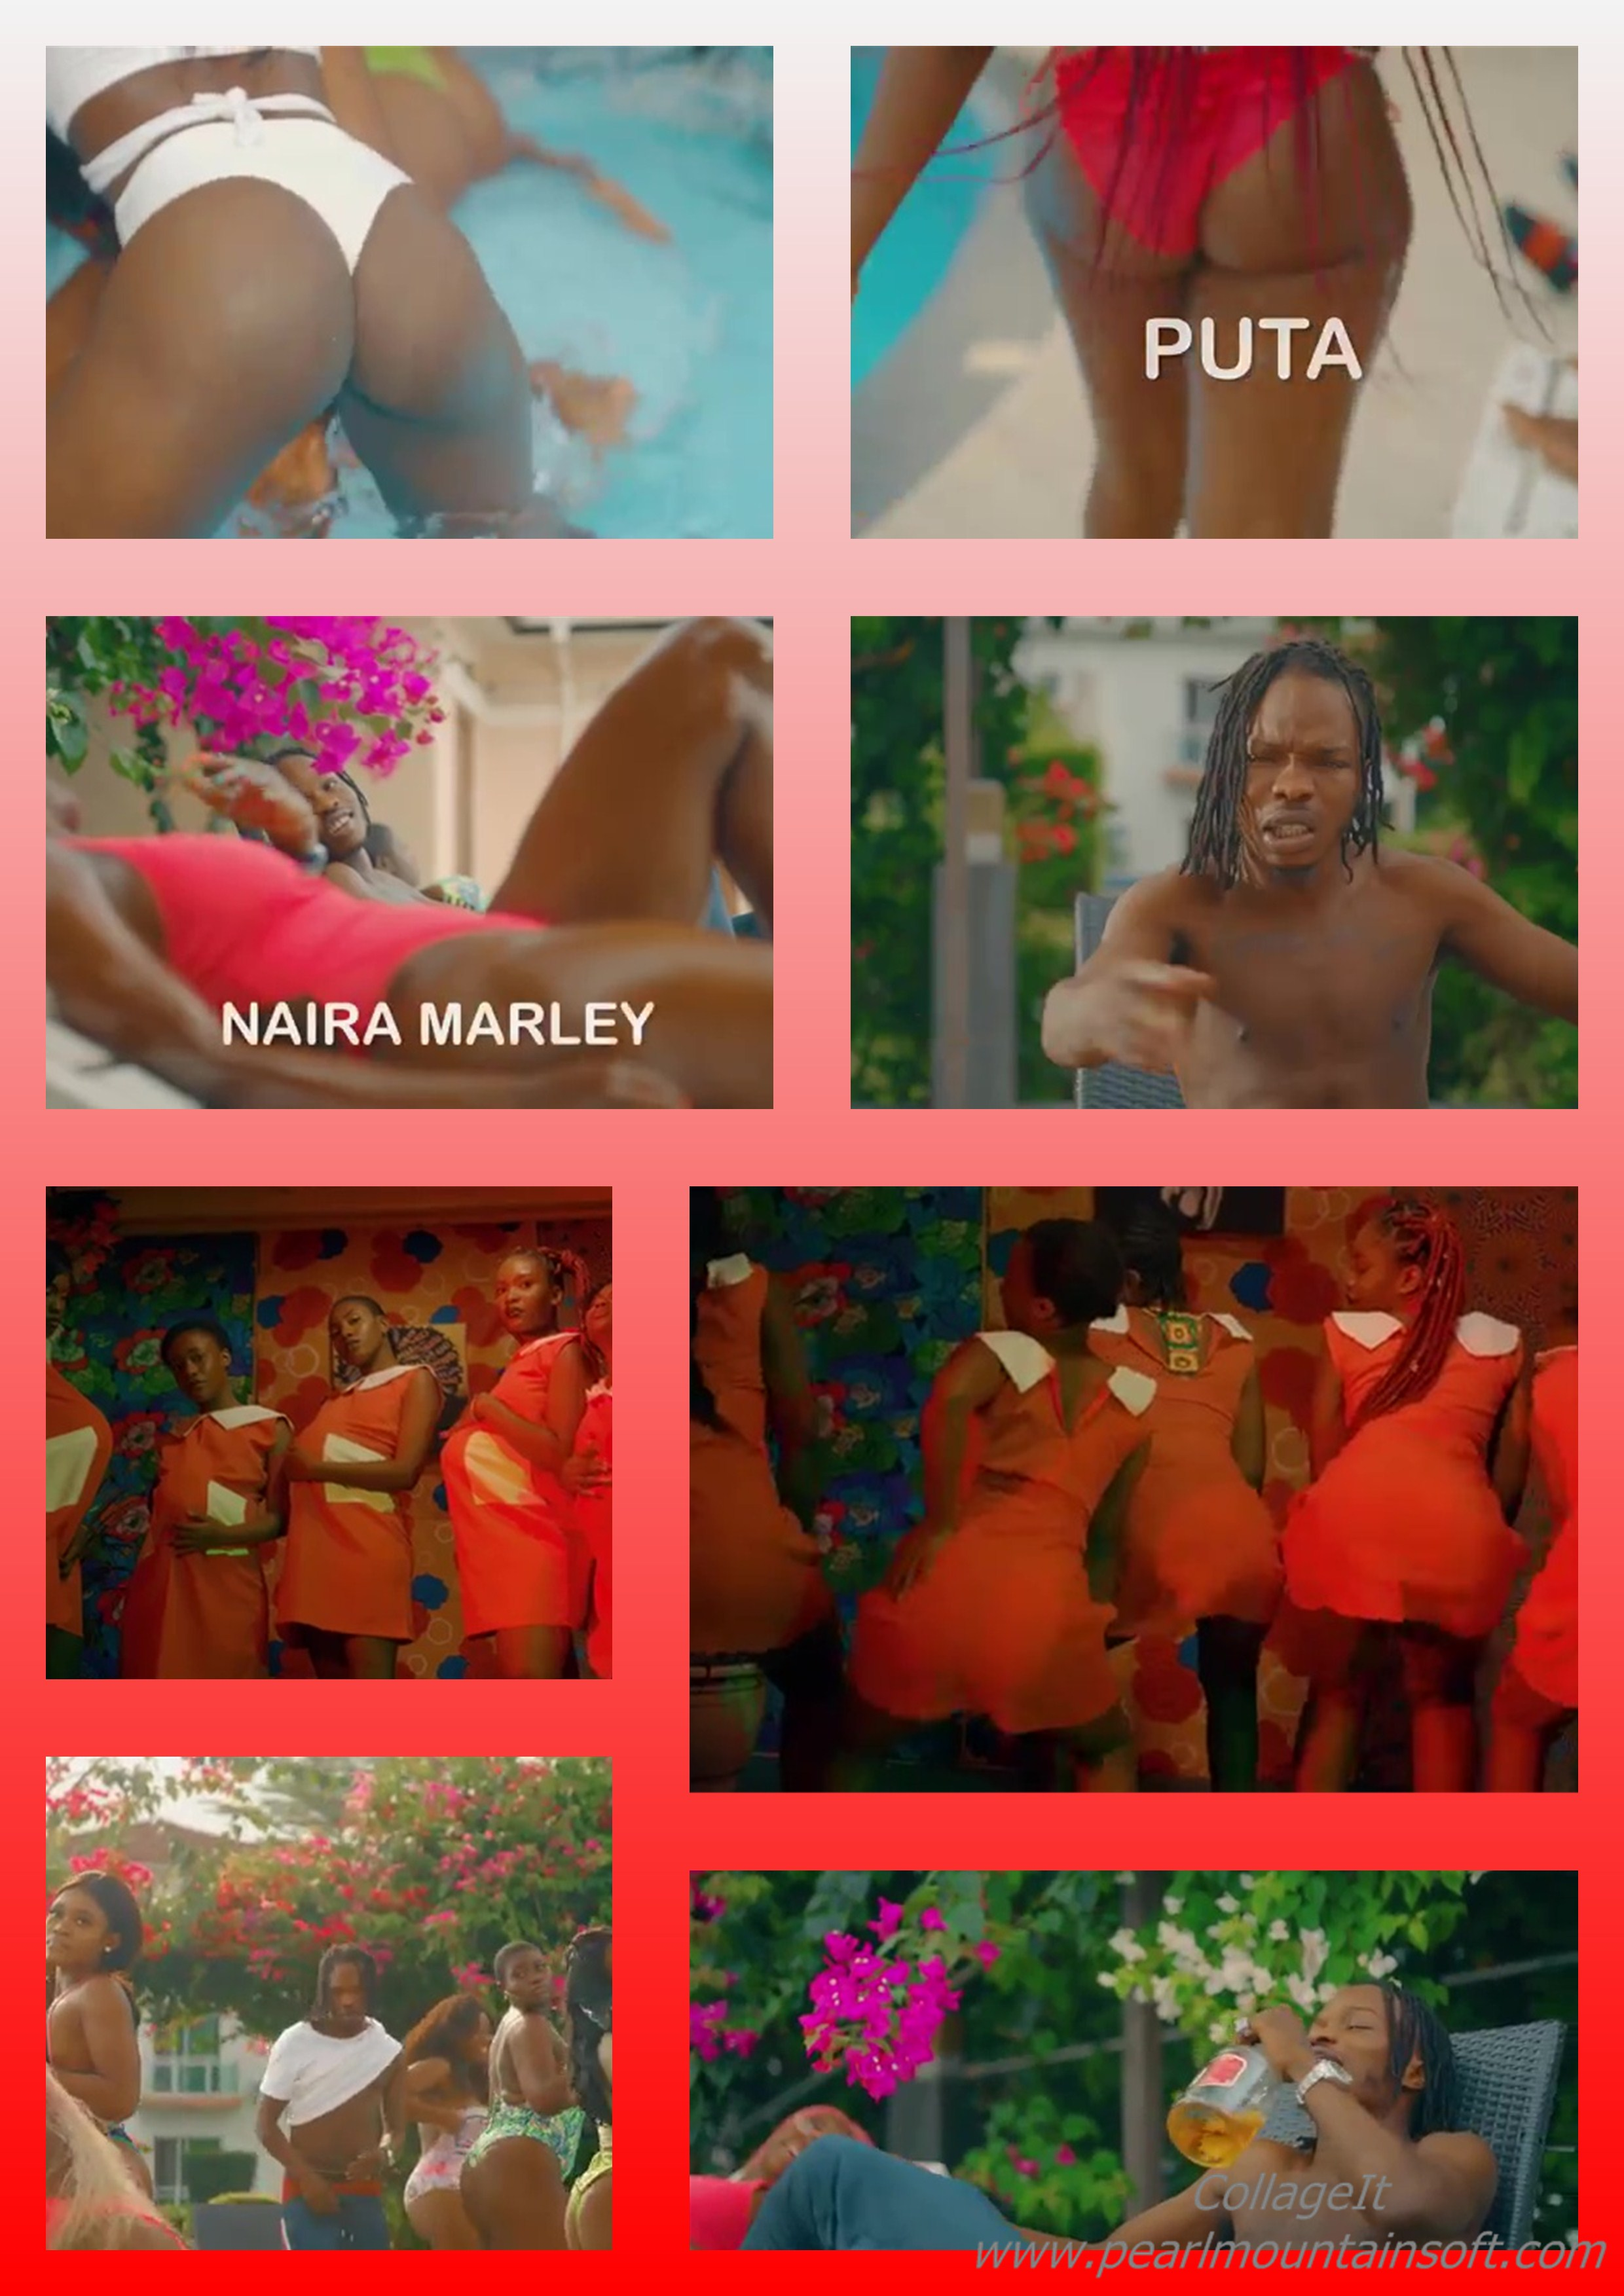 """(+LYRICS+TRANSLATION+MEANING) MUSIC REVIEW: PUTA BY NAIRA MARLEY """"THIS PUTA SONG MEANS GIRLS ARE PROSTITUTES"""" +THIS IS AN """"IDI"""" AS IN """"ASS"""" DISPLAY VIDEO"""